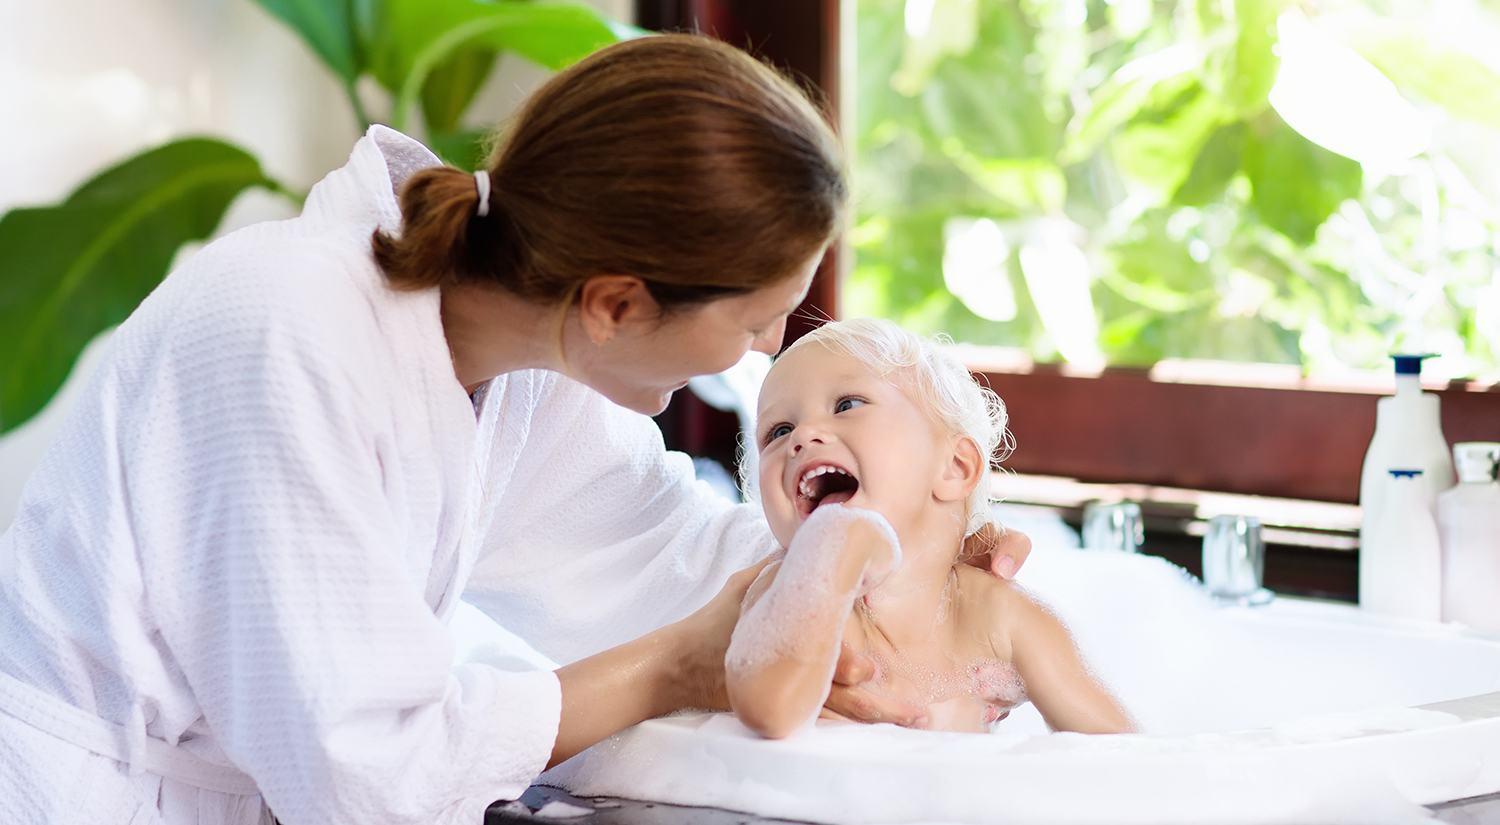 Bath Event - Mother and child